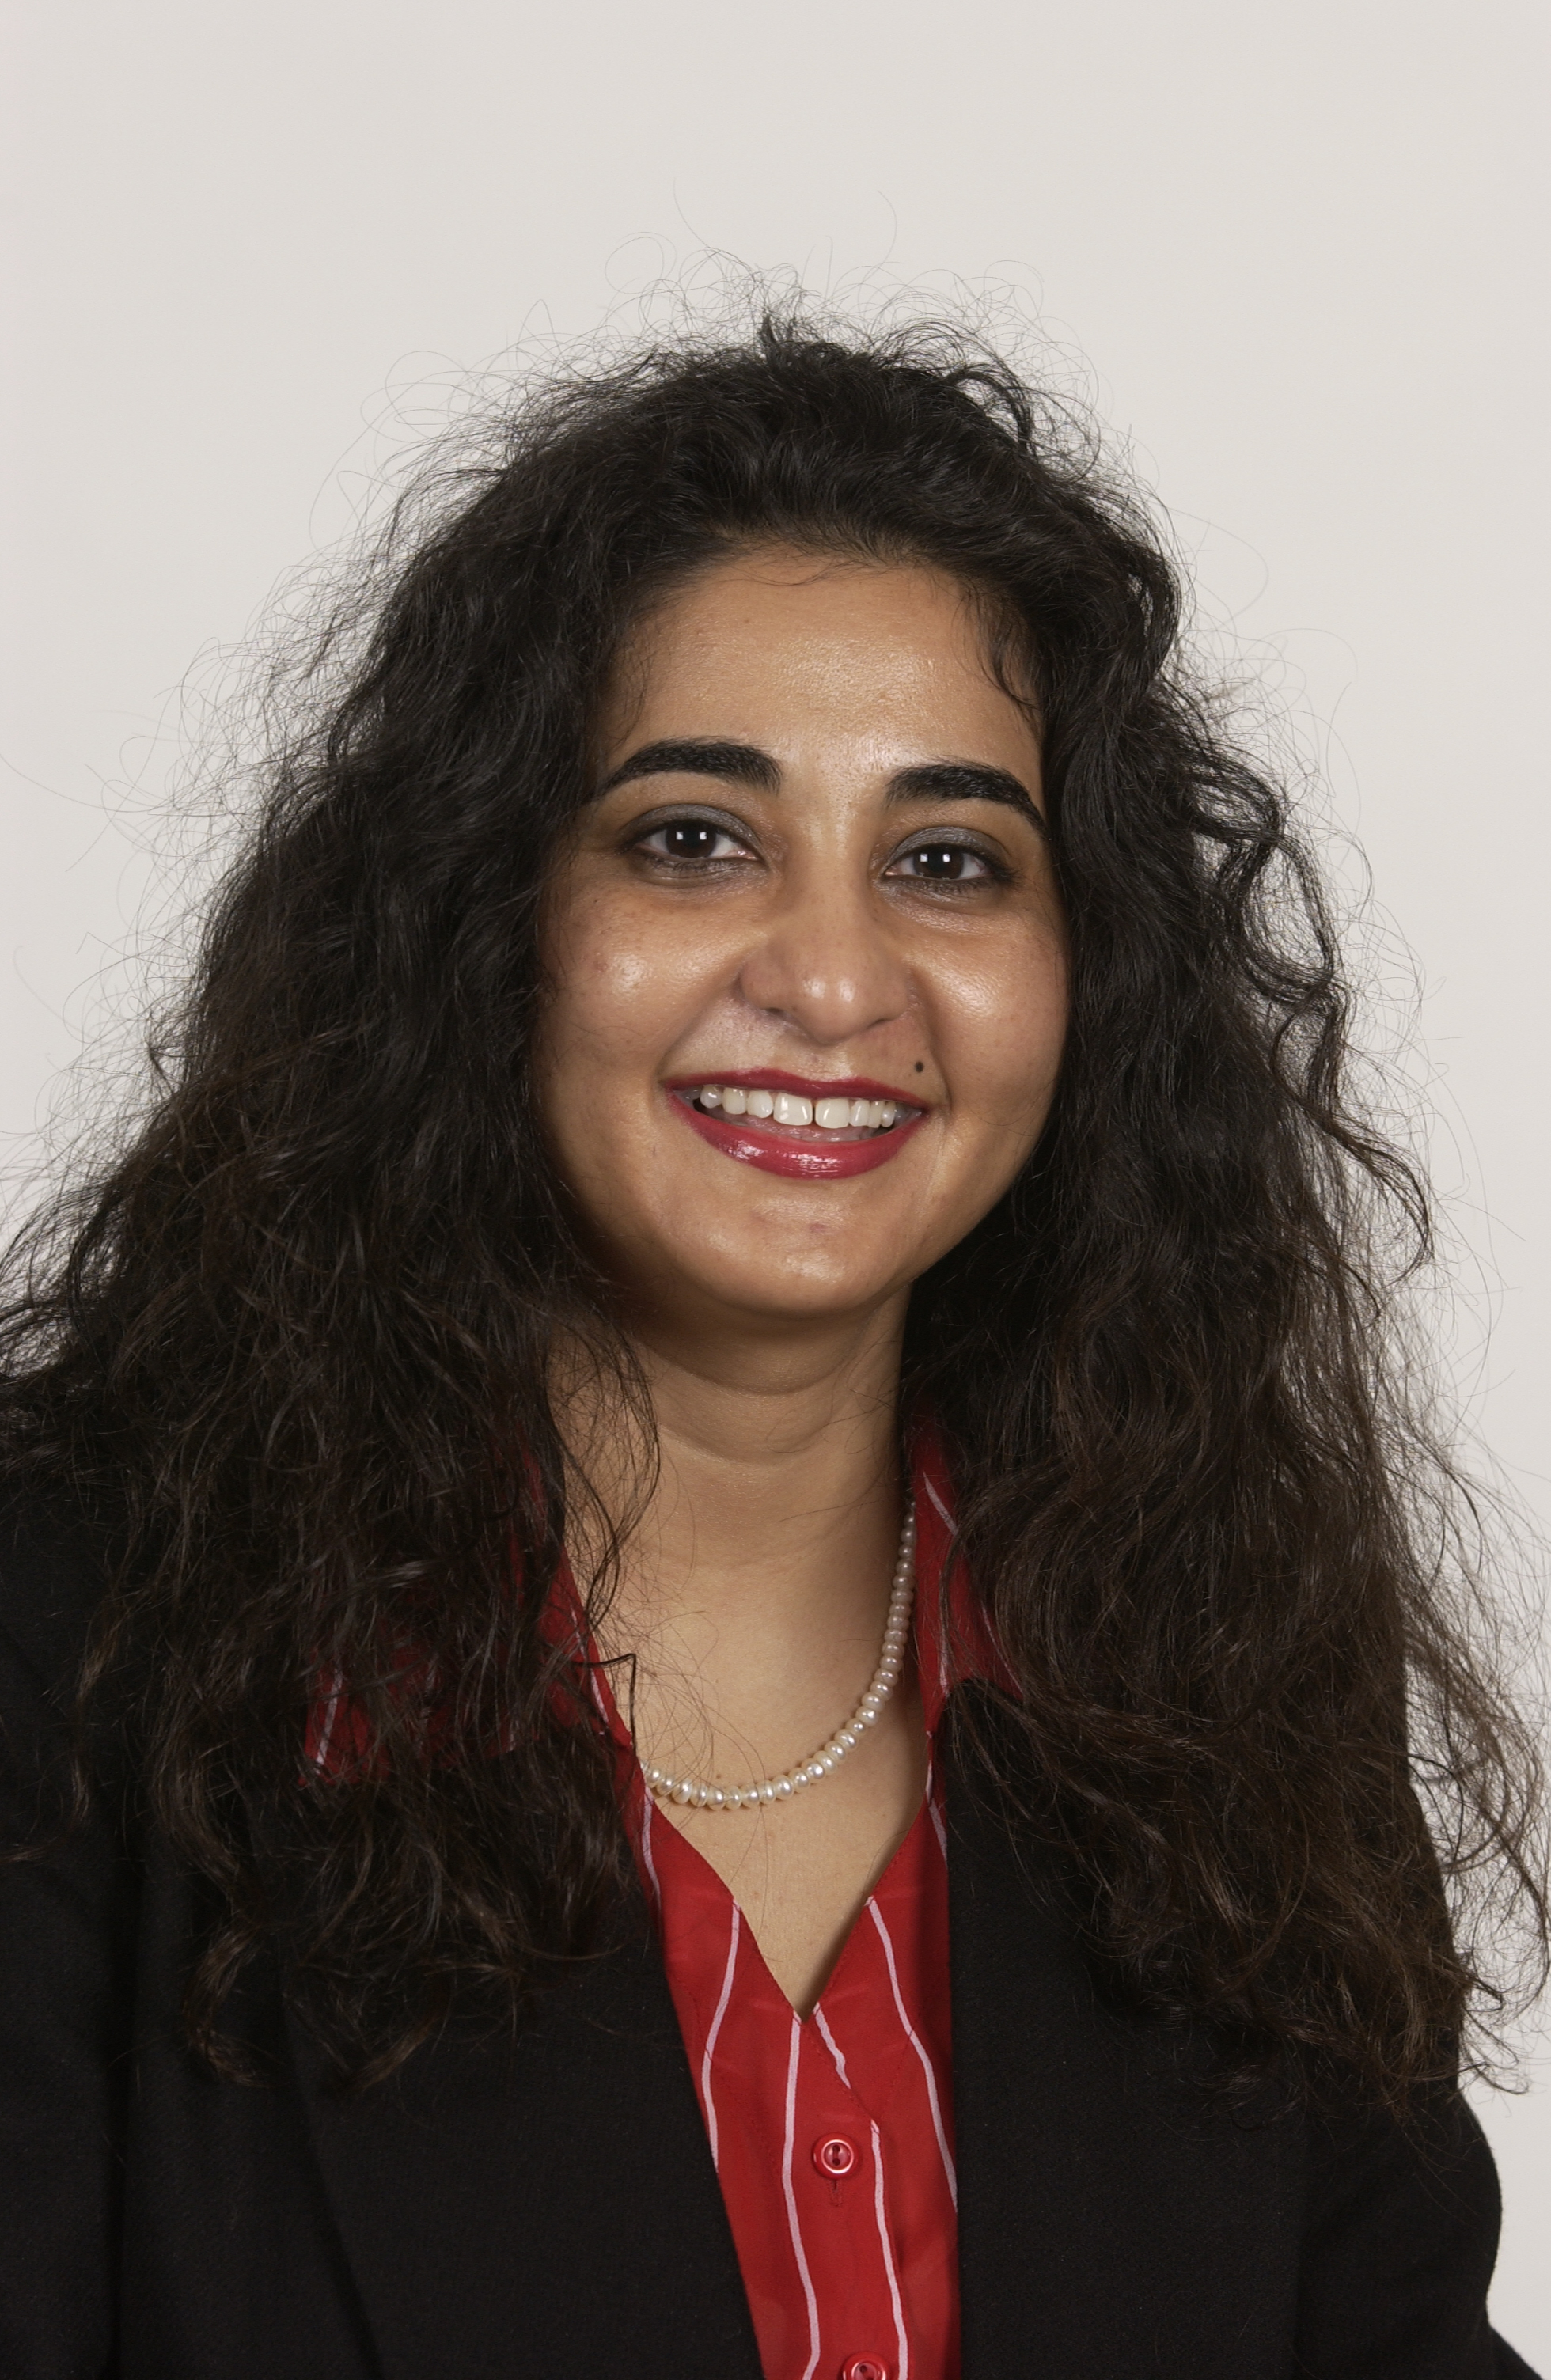 K. D. Joshi, Washington State University